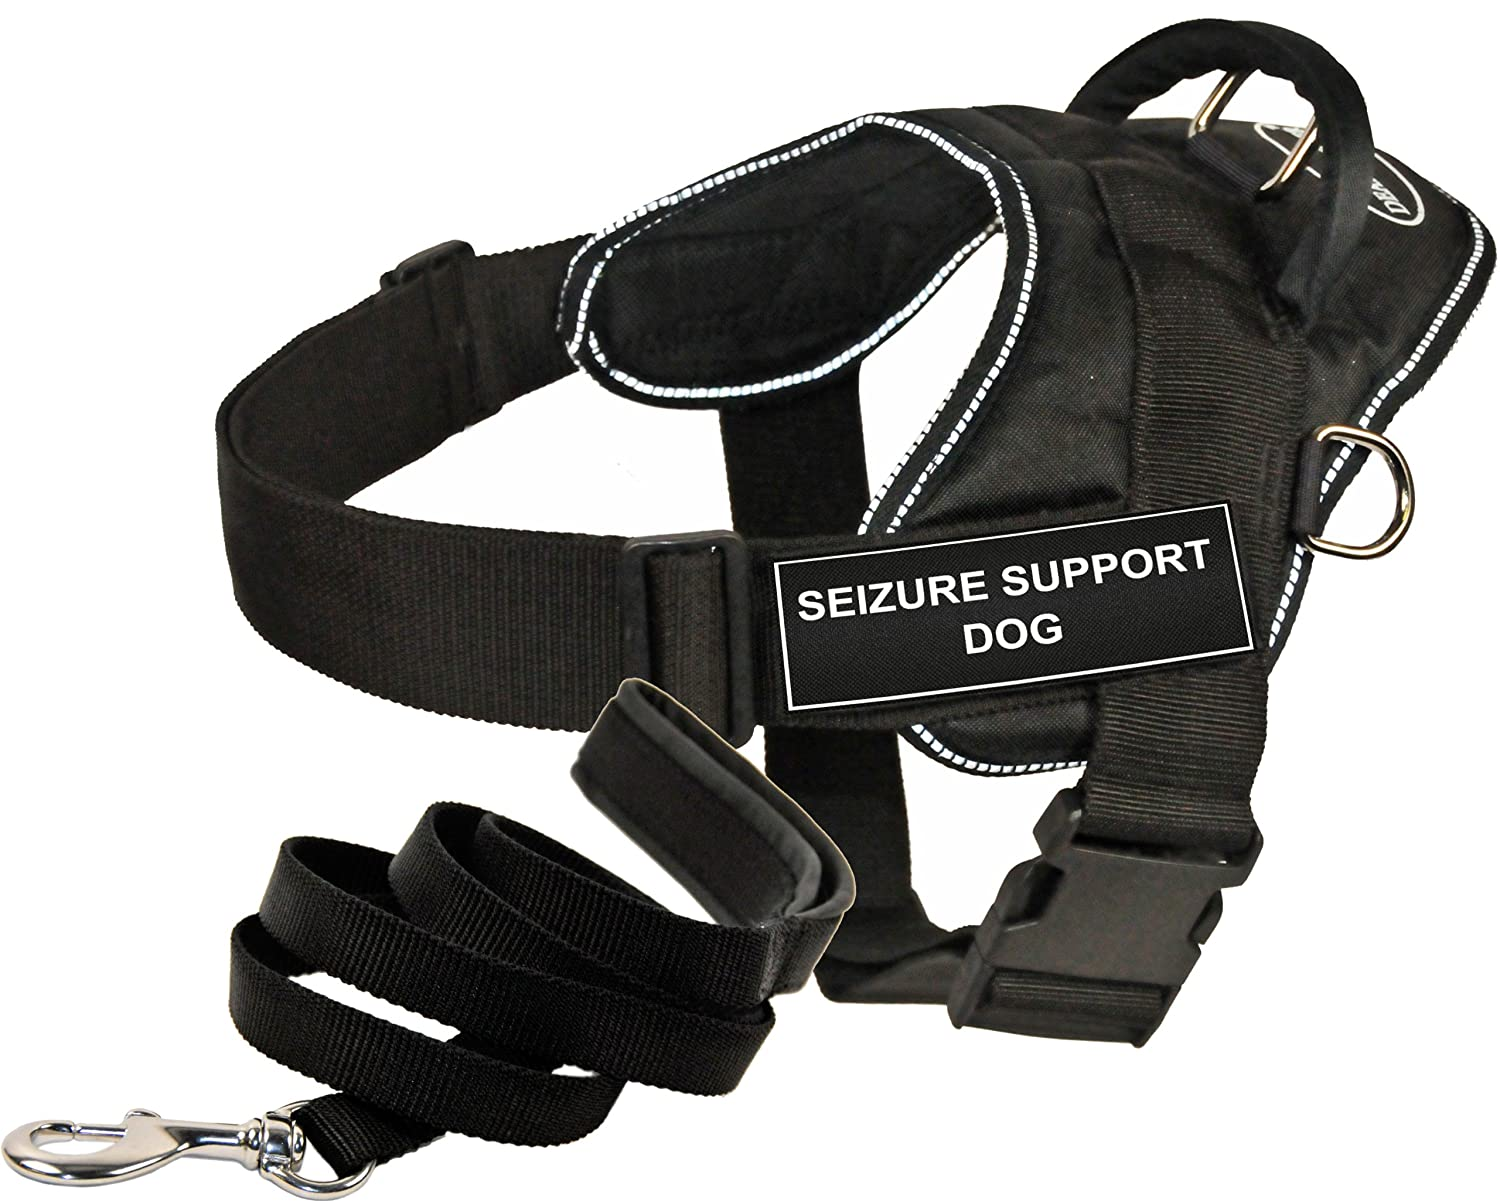 Dean and Tyler Bundle One DT Fun Works  Harness, Seizure Support Dog, Reflective, Medium + One Padded Puppy  Leash, 6 FT Stainless Snap Black